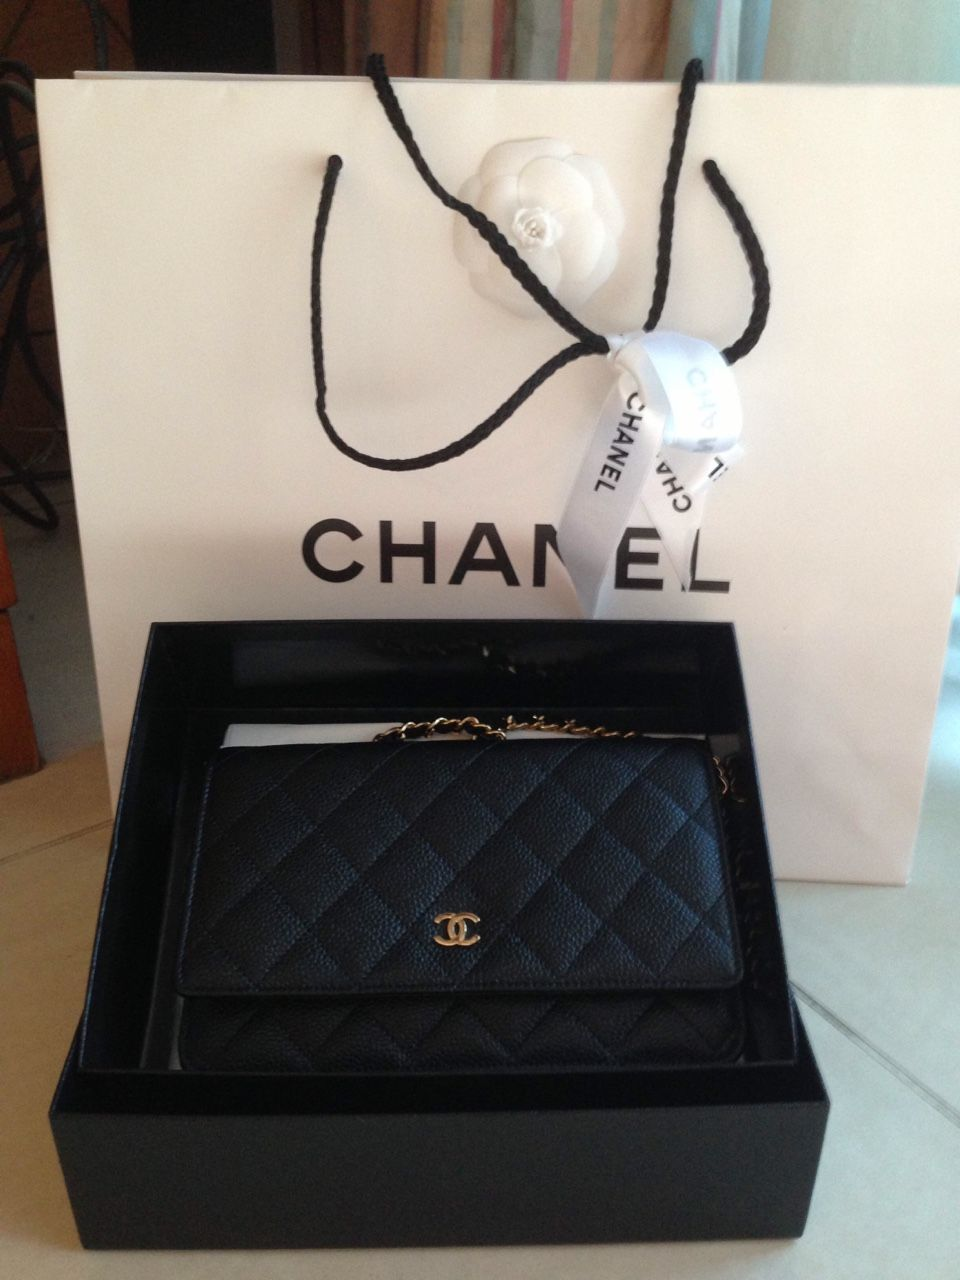 http://chanelondon.tumblr.com/ | Beautiful Bags | Pinterest | Coco ... : chanel woc classic quilted bag - Adamdwight.com